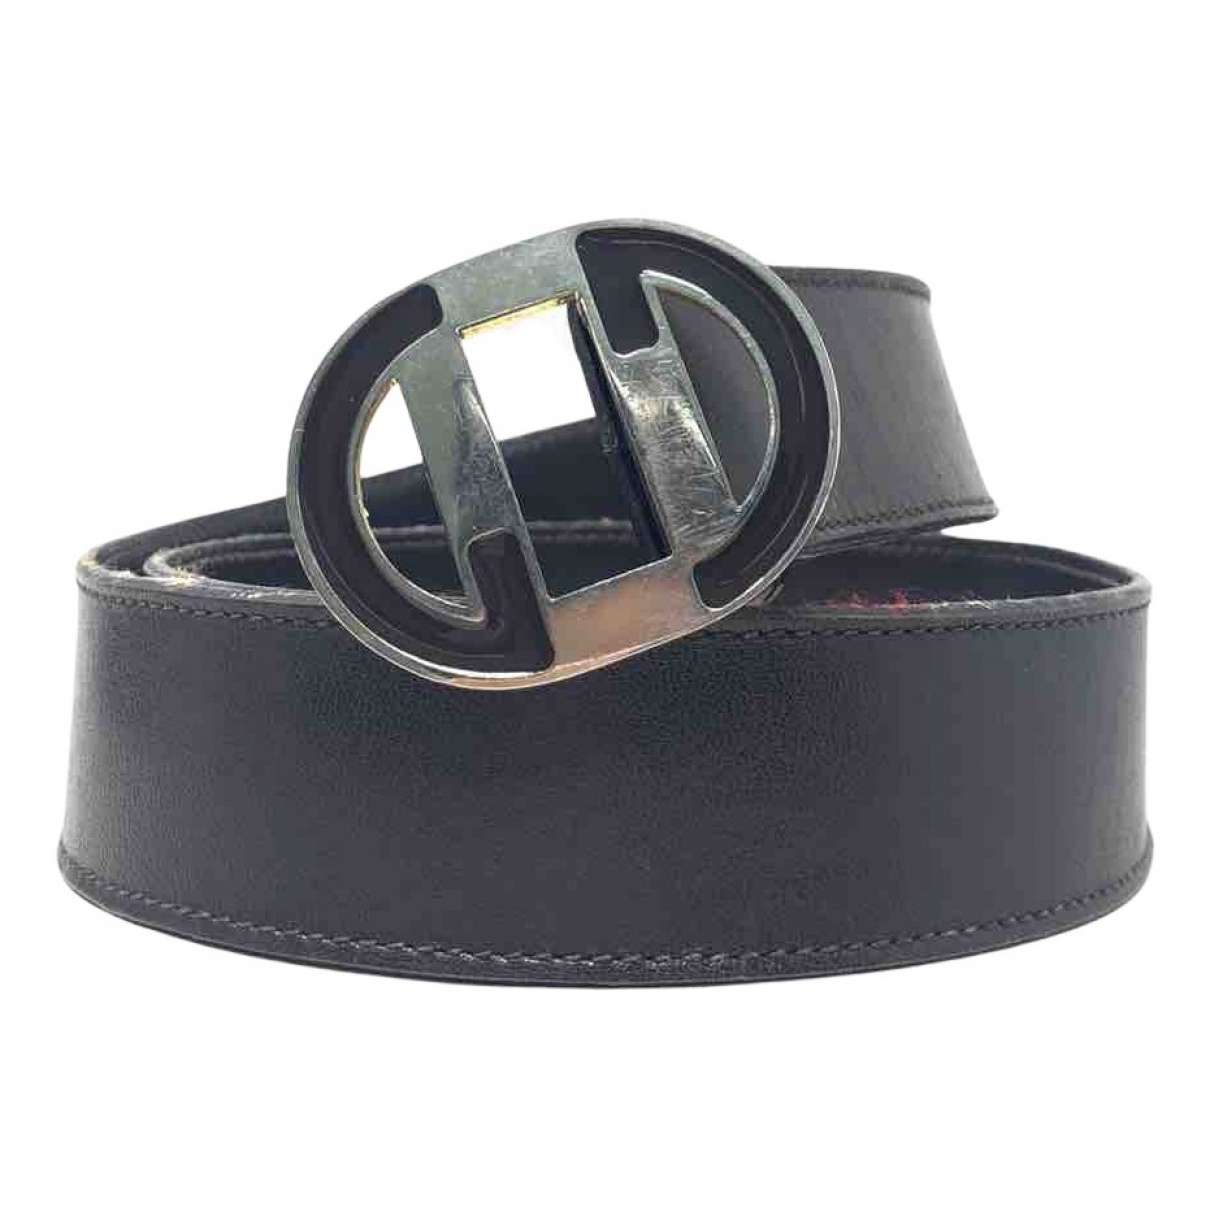 Gucci N Brown Leather belt for Women 70 cm